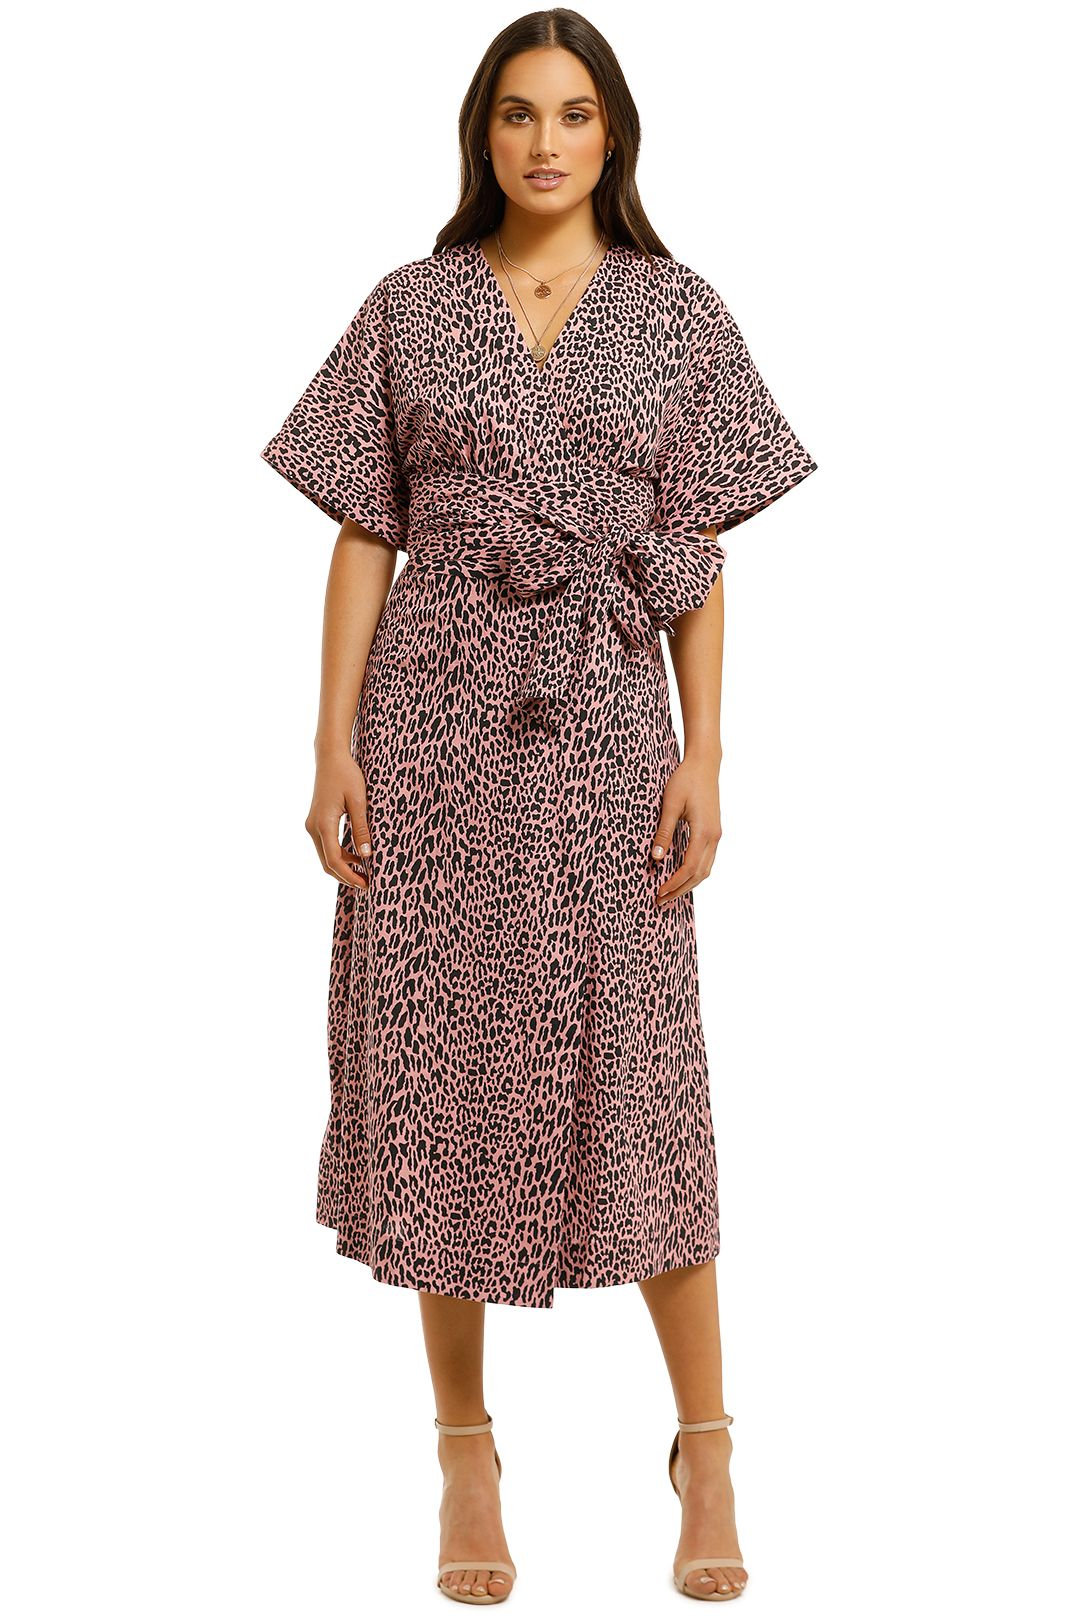 Husk-Lima-Wrap-Dress-Pink-Leopard-Front